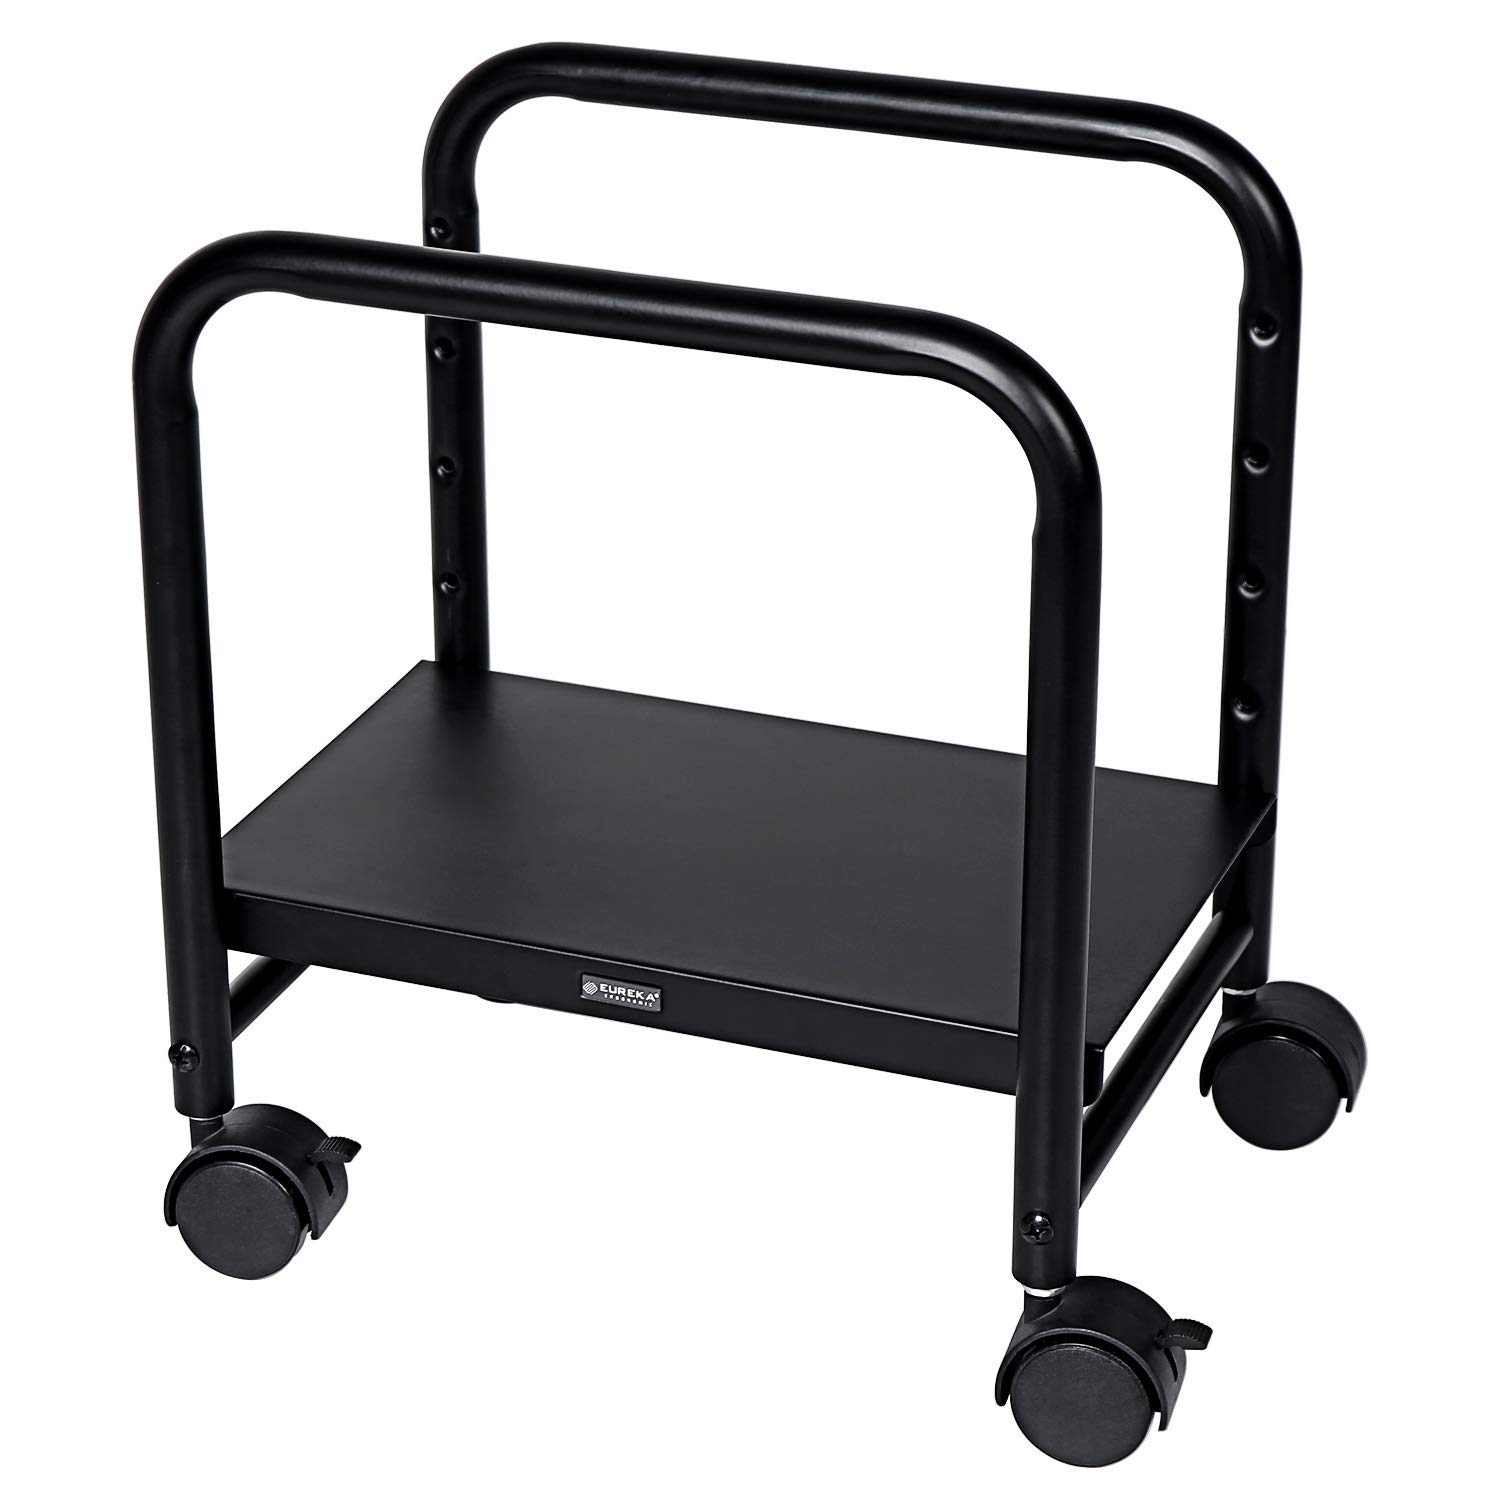 EUREKA ERGONOMIC Computer Cart Height Adjustable Mobile Cart CPU Stand Steel Rolling Stand Cart Holder Locking Wheels for Home Desk Office Desk Black by Eureka Ergonomic